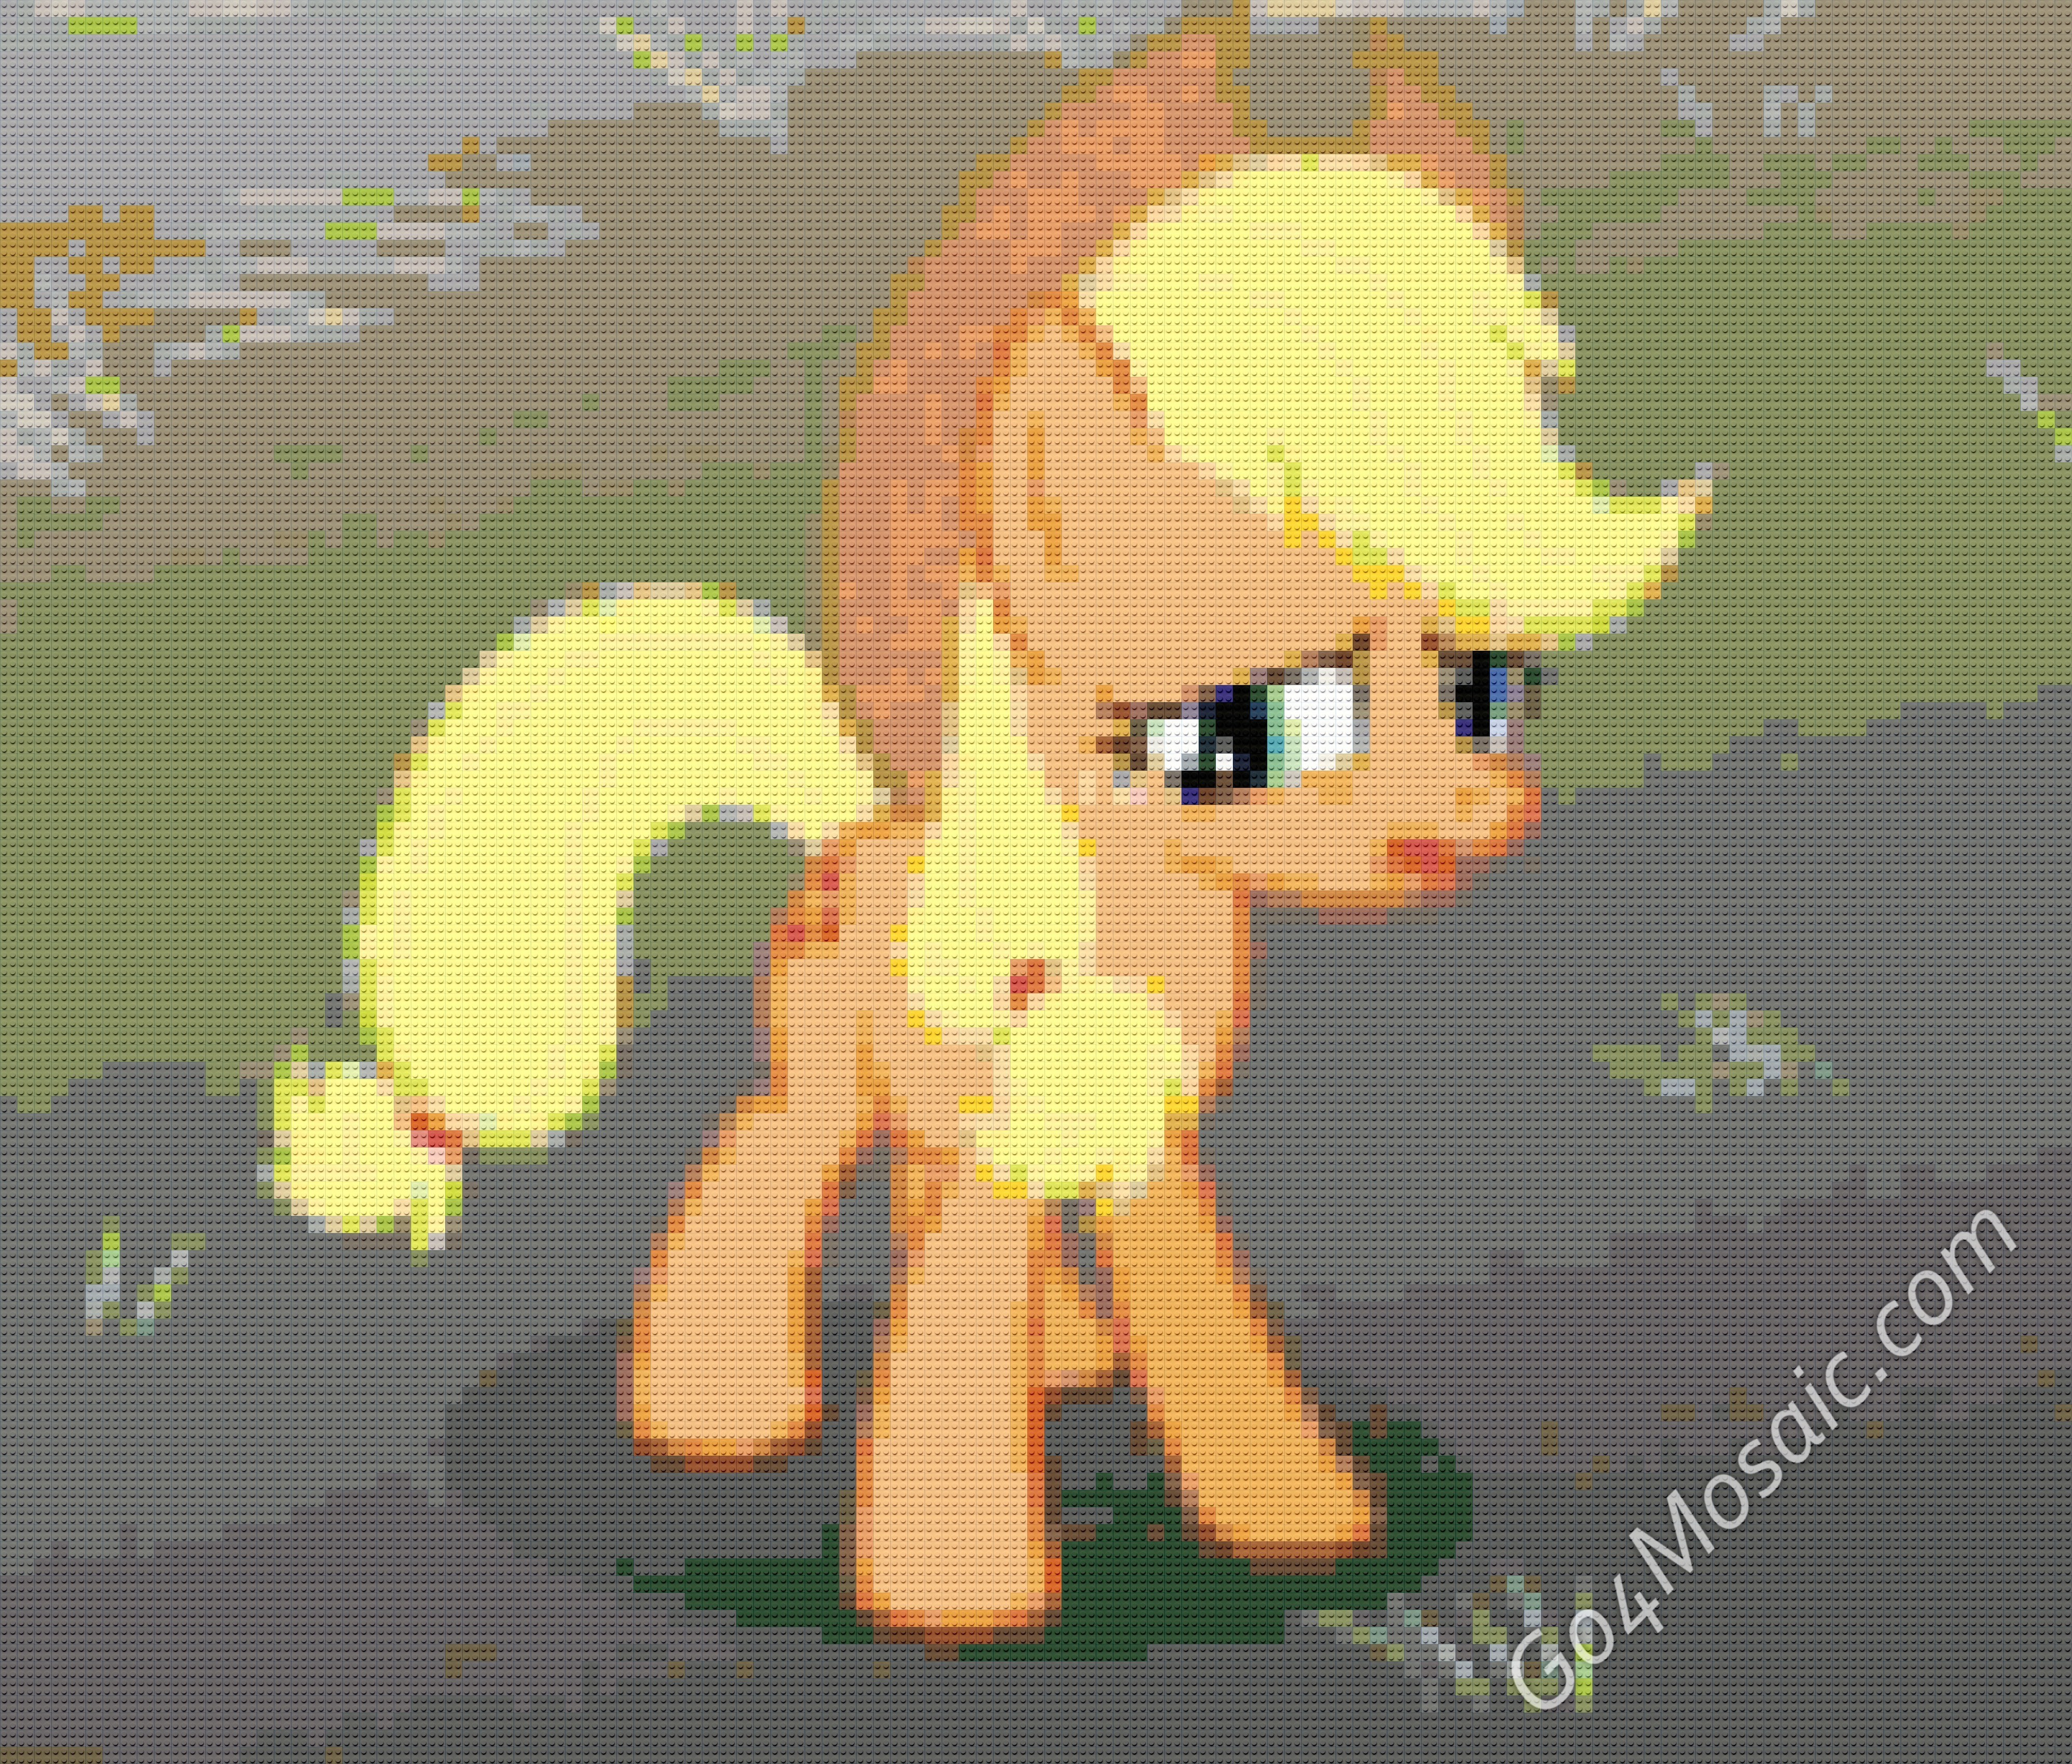 Applejack mosaic from Lego Bricks